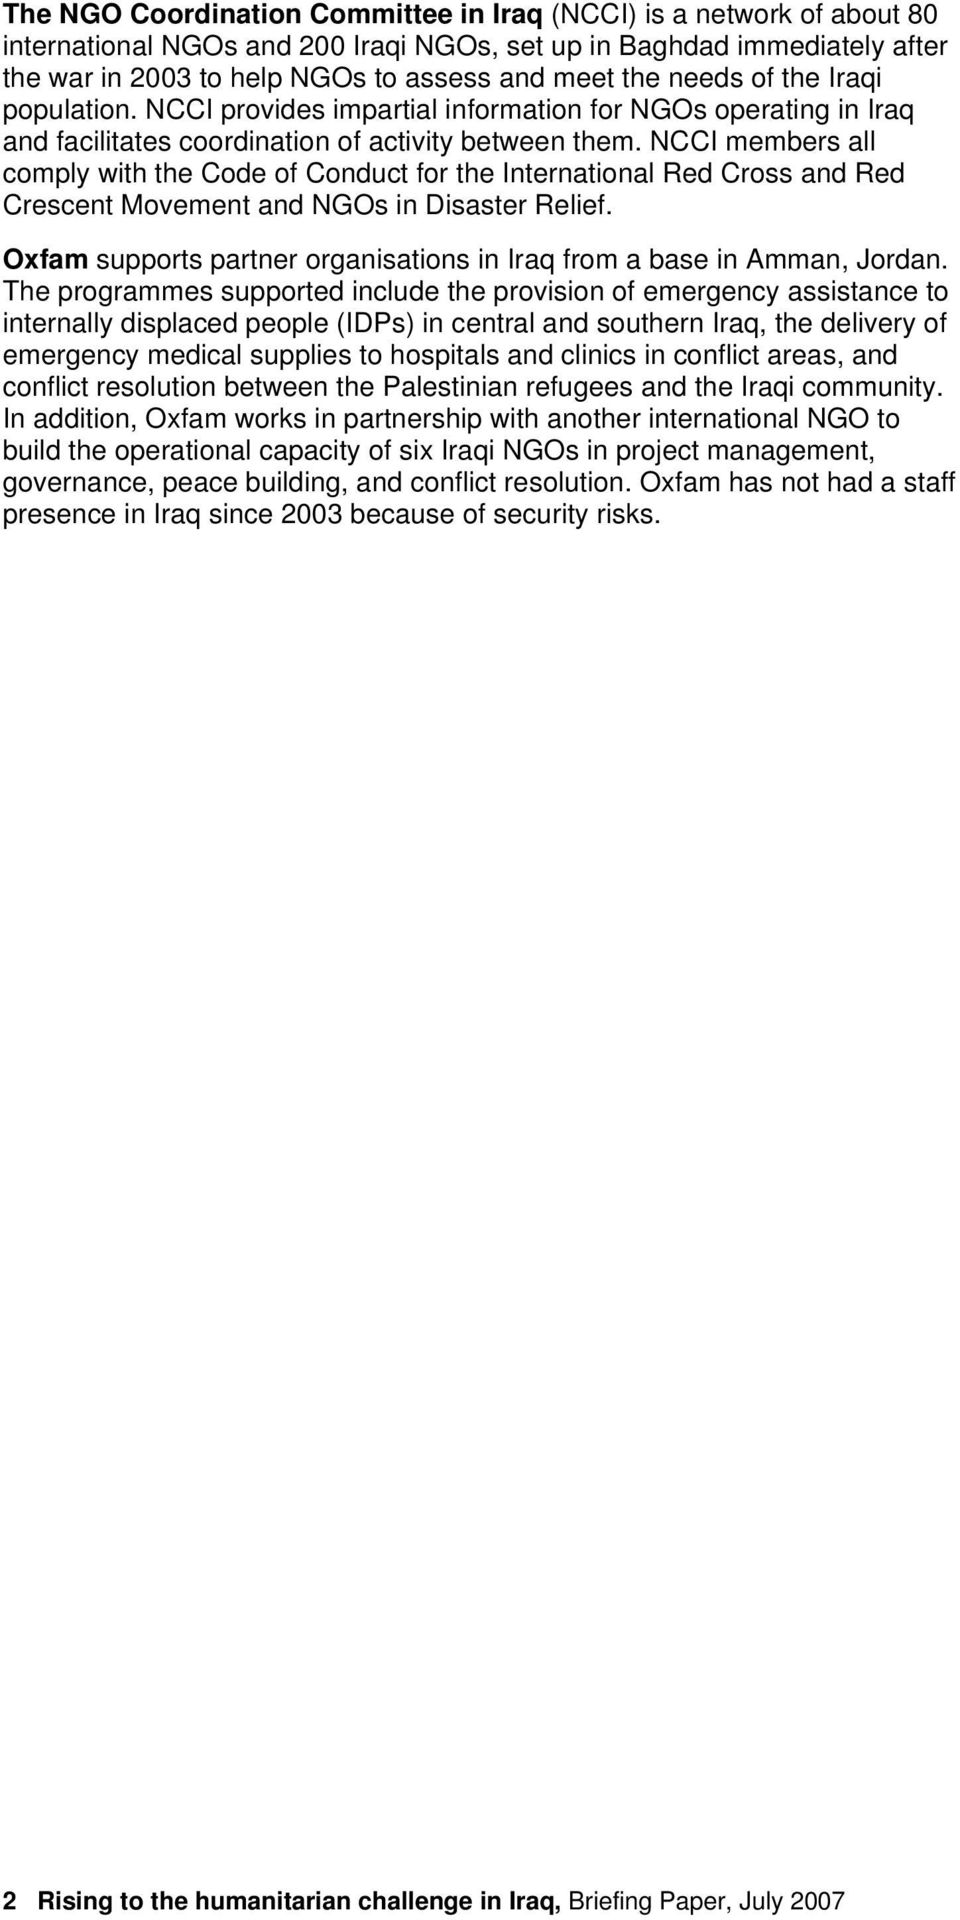 NCCI members all comply with the Code of Conduct for the International Red Cross and Red Crescent Movement and NGOs in Disaster Relief.